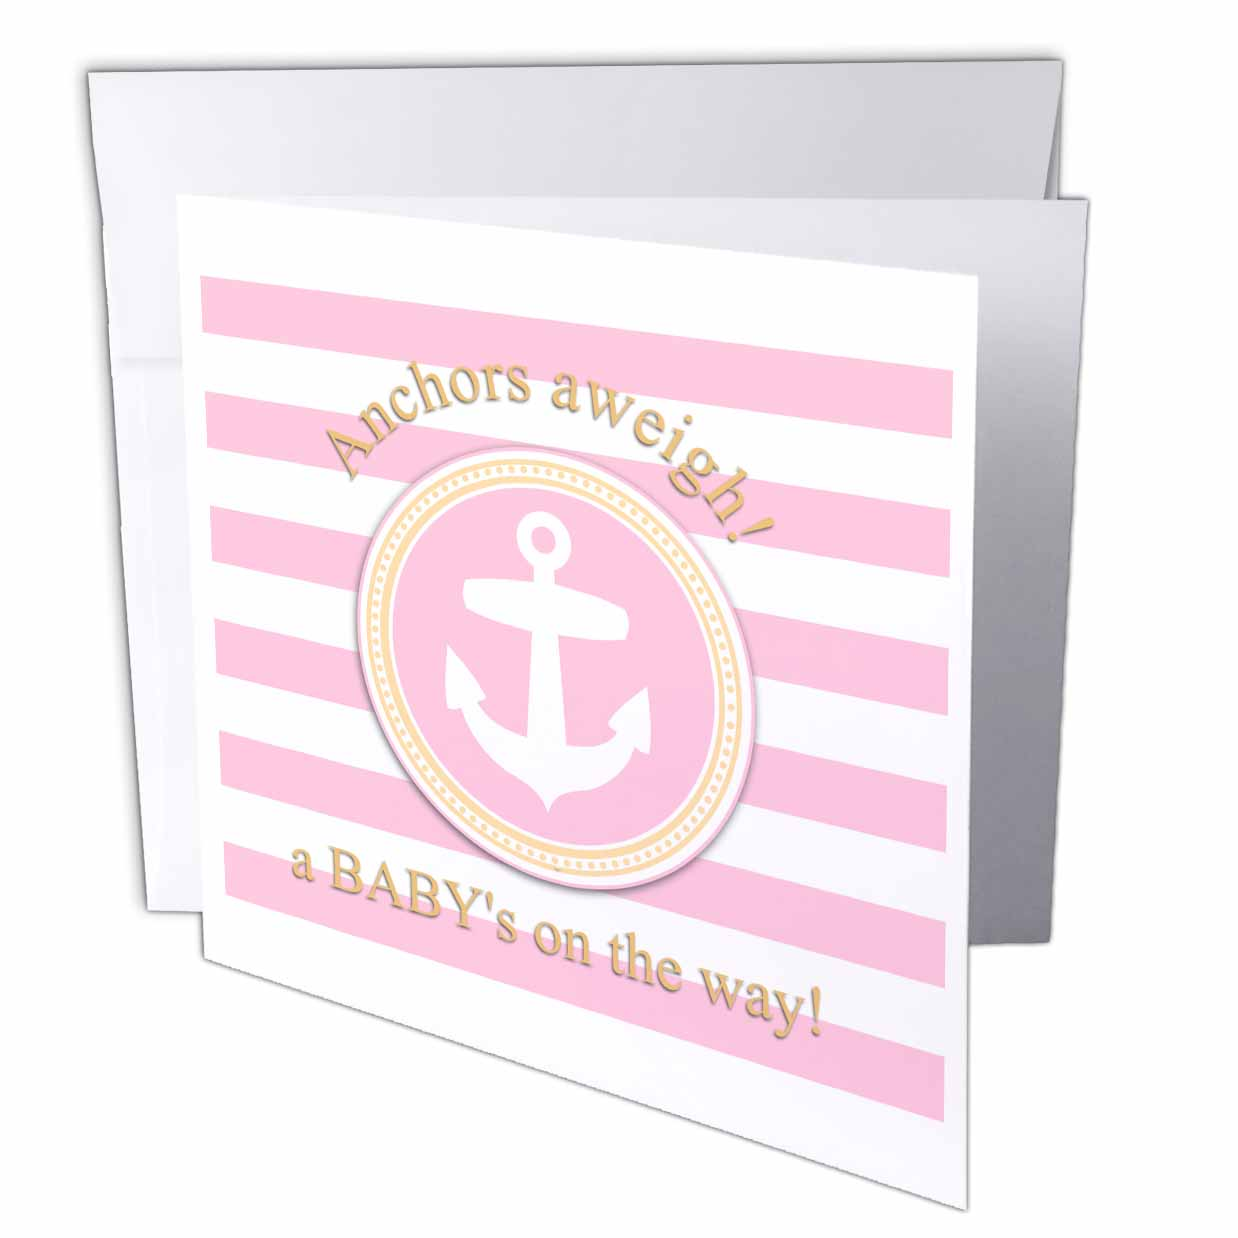 3dRose Anchors aweigh a babys on the way - for pink nautical girl baby shower, Greeting Cards, 6 x 6 inches, set of 12